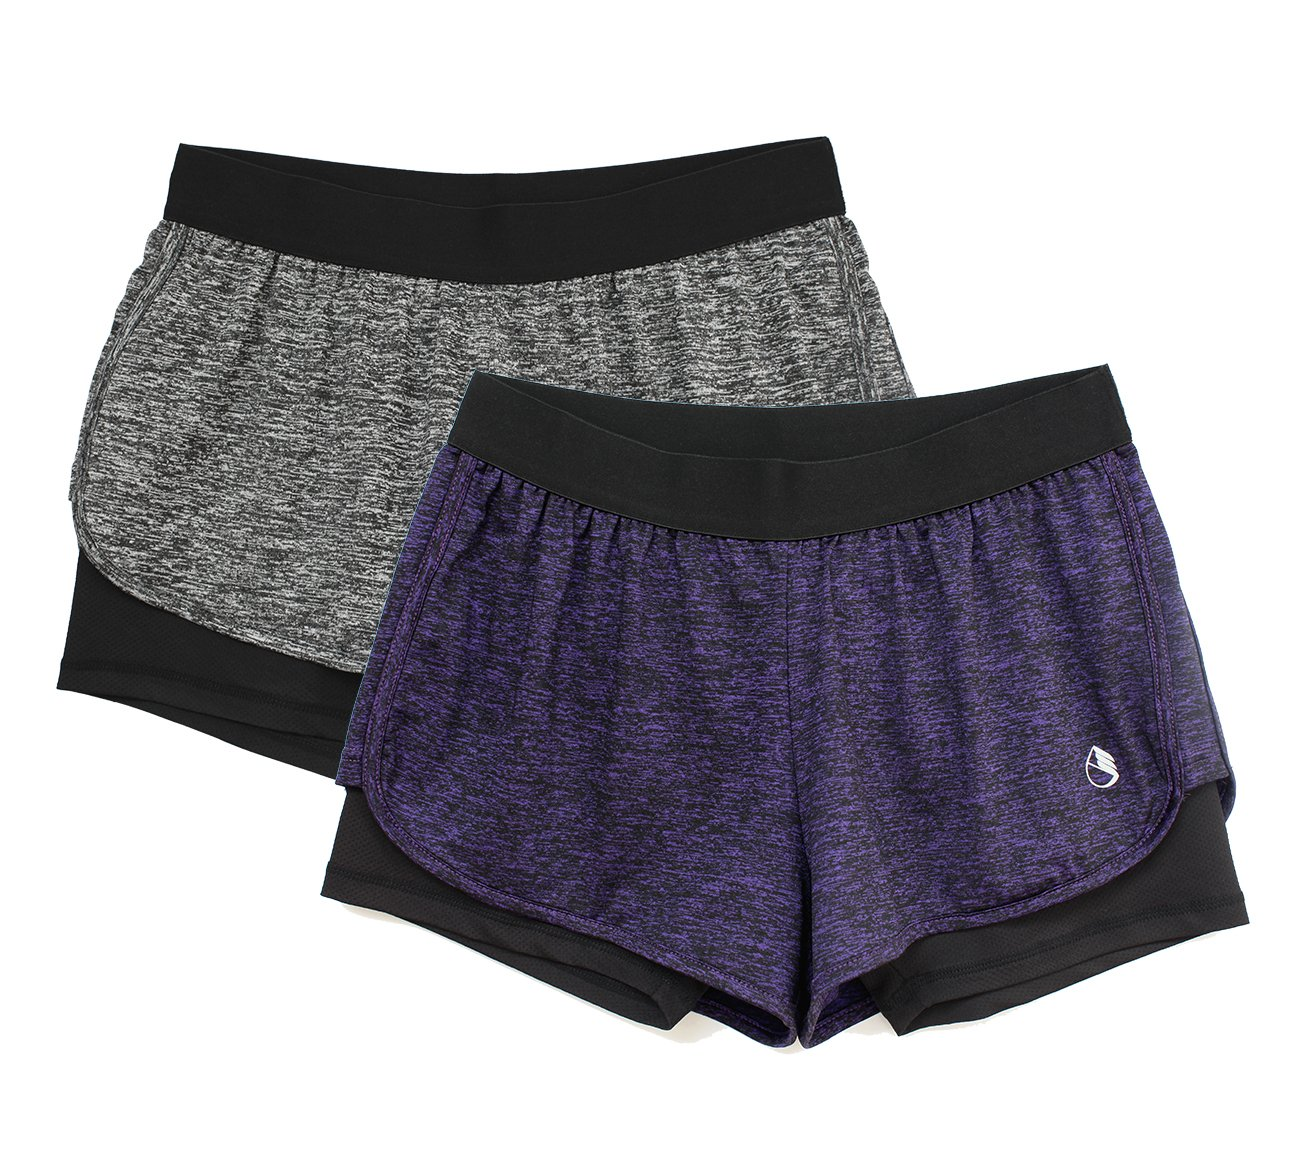 icyzone Running Yoga Shorts Women - Activewear Workout Exercise Athletic Jogging Shorts 2-in-1 (Charcoal/Purple, M)